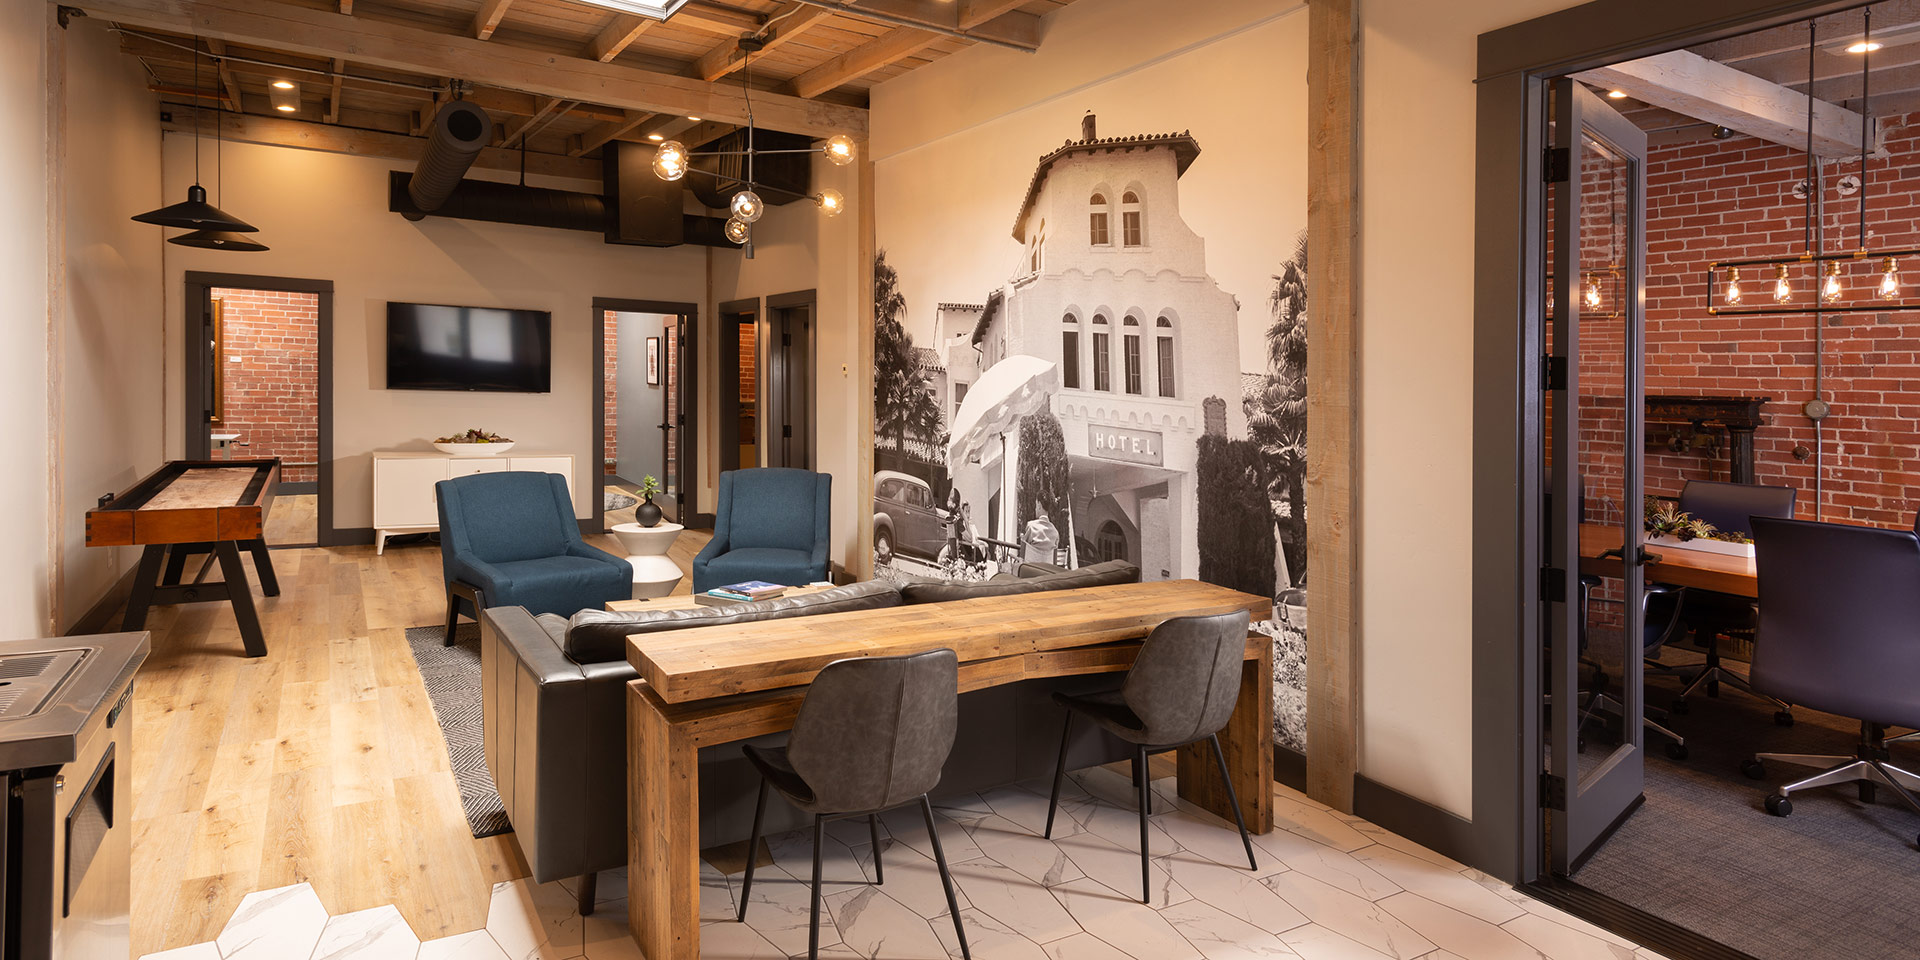 AZUL-South-Office-Seating-Boardroom